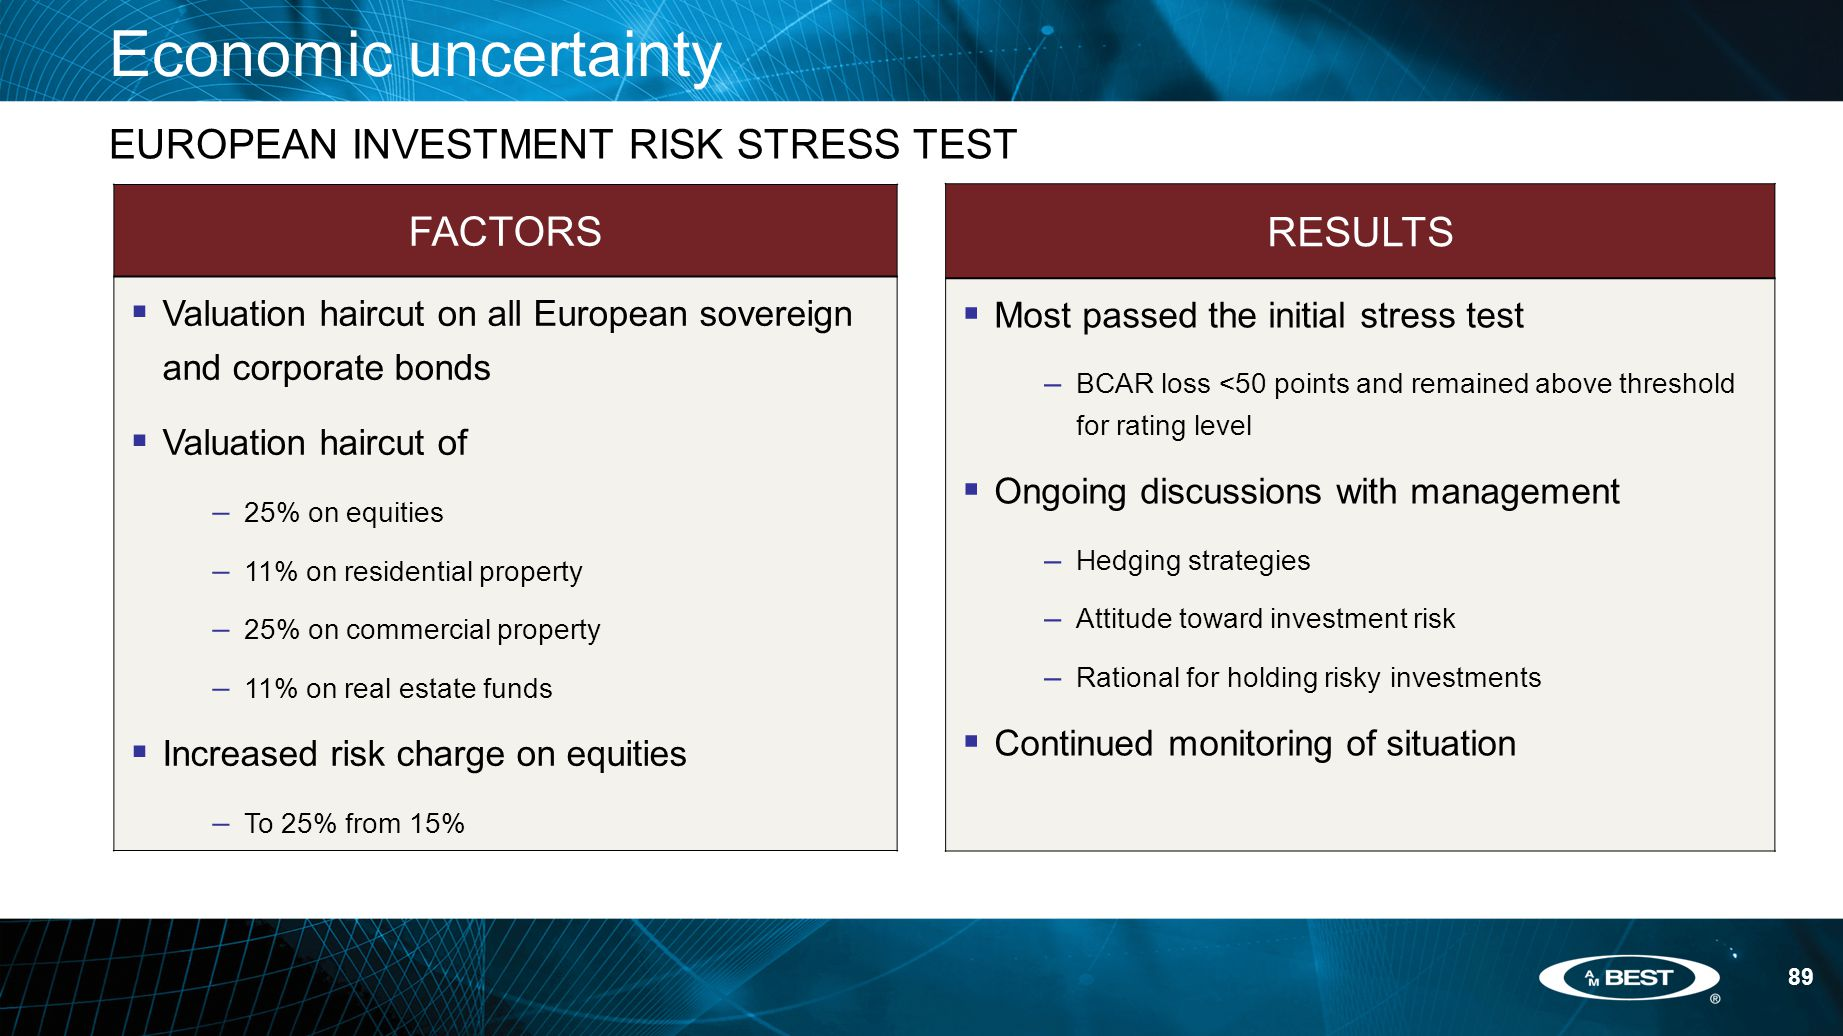 89 Economic uncertainty EUROPEAN INVESTMENT RISK STRESS TEST FACTORS  Valuation haircut on all European sovereign and corporate bonds  Valuation haircut of – 25% on equities – 11% on residential property – 25% on commercial property – 11% on real estate funds  Increased risk charge on equities – To 25% from 15% RESULTS  Most passed the initial stress test – BCAR loss <50 points and remained above threshold for rating level  Ongoing discussions with management – Hedging strategies – Attitude toward investment risk – Rational for holding risky investments  Continued monitoring of situation